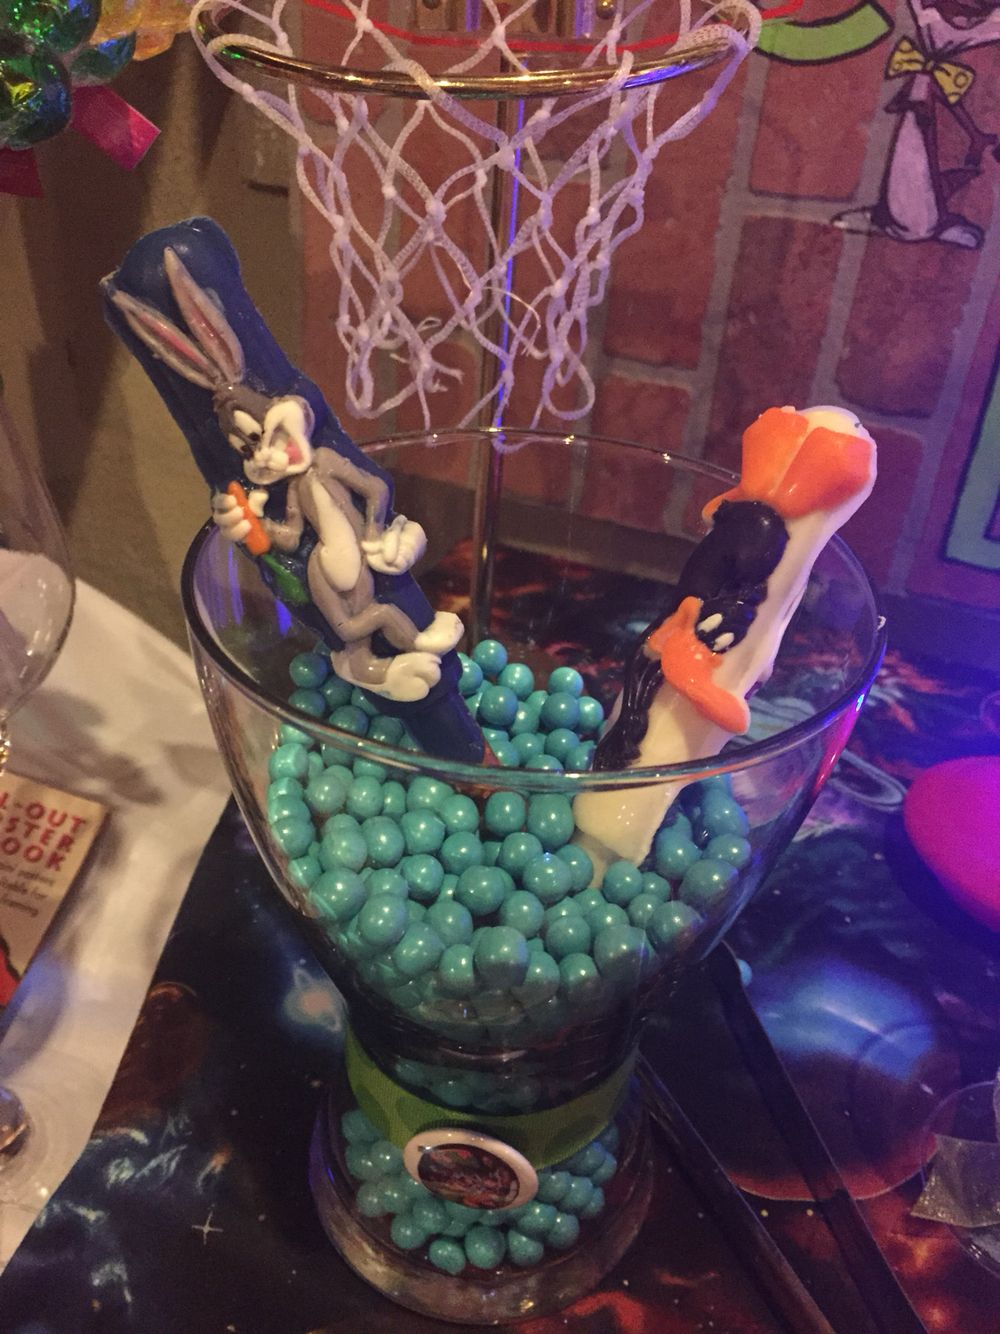 More pics of the candy buffet space jam theme party for Sideboard jam